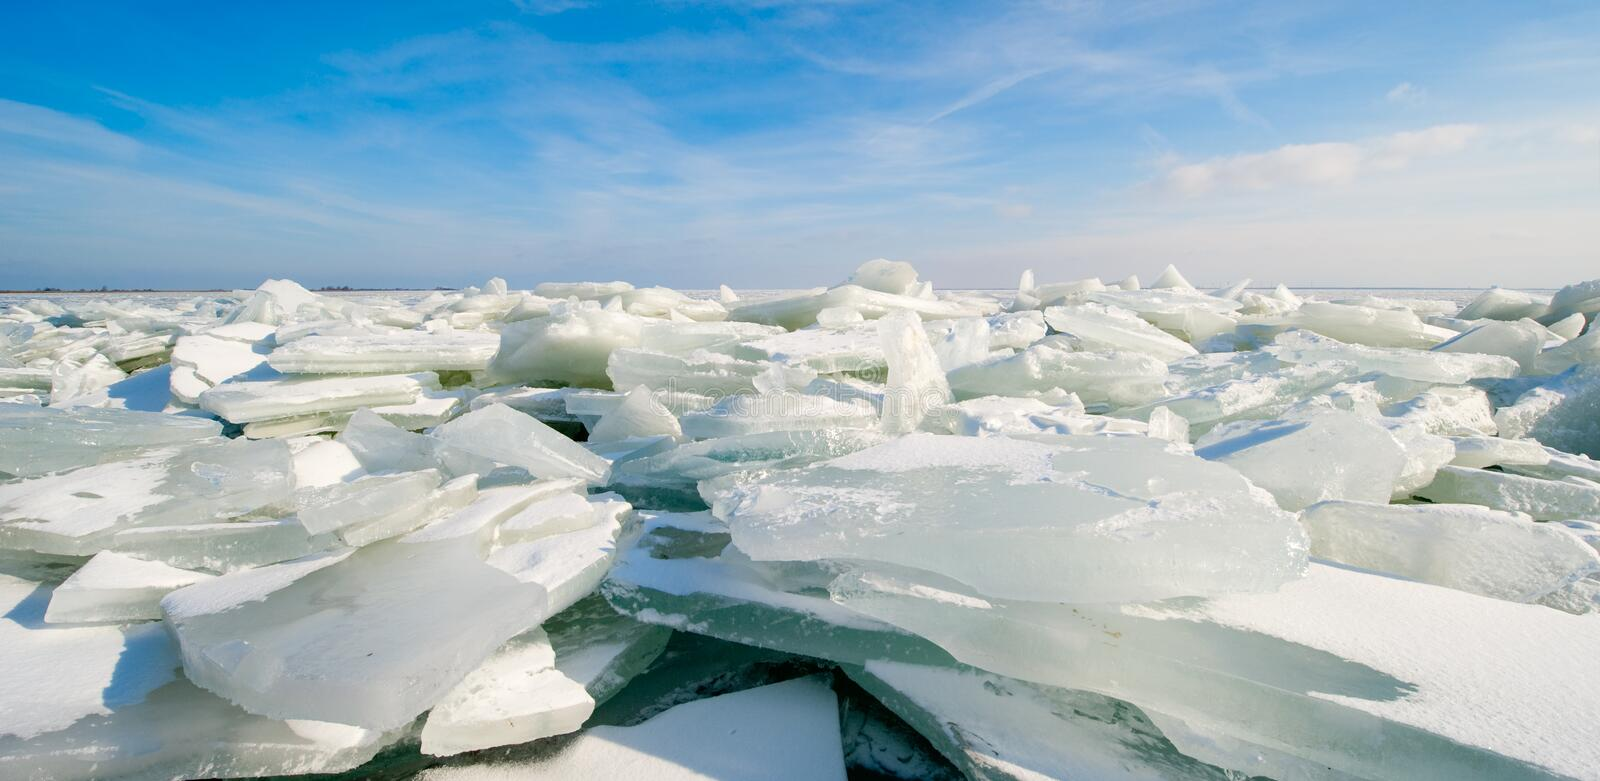 Shelf ice in Marken. A small village near Amsterdam The Netherlands royalty free stock photography